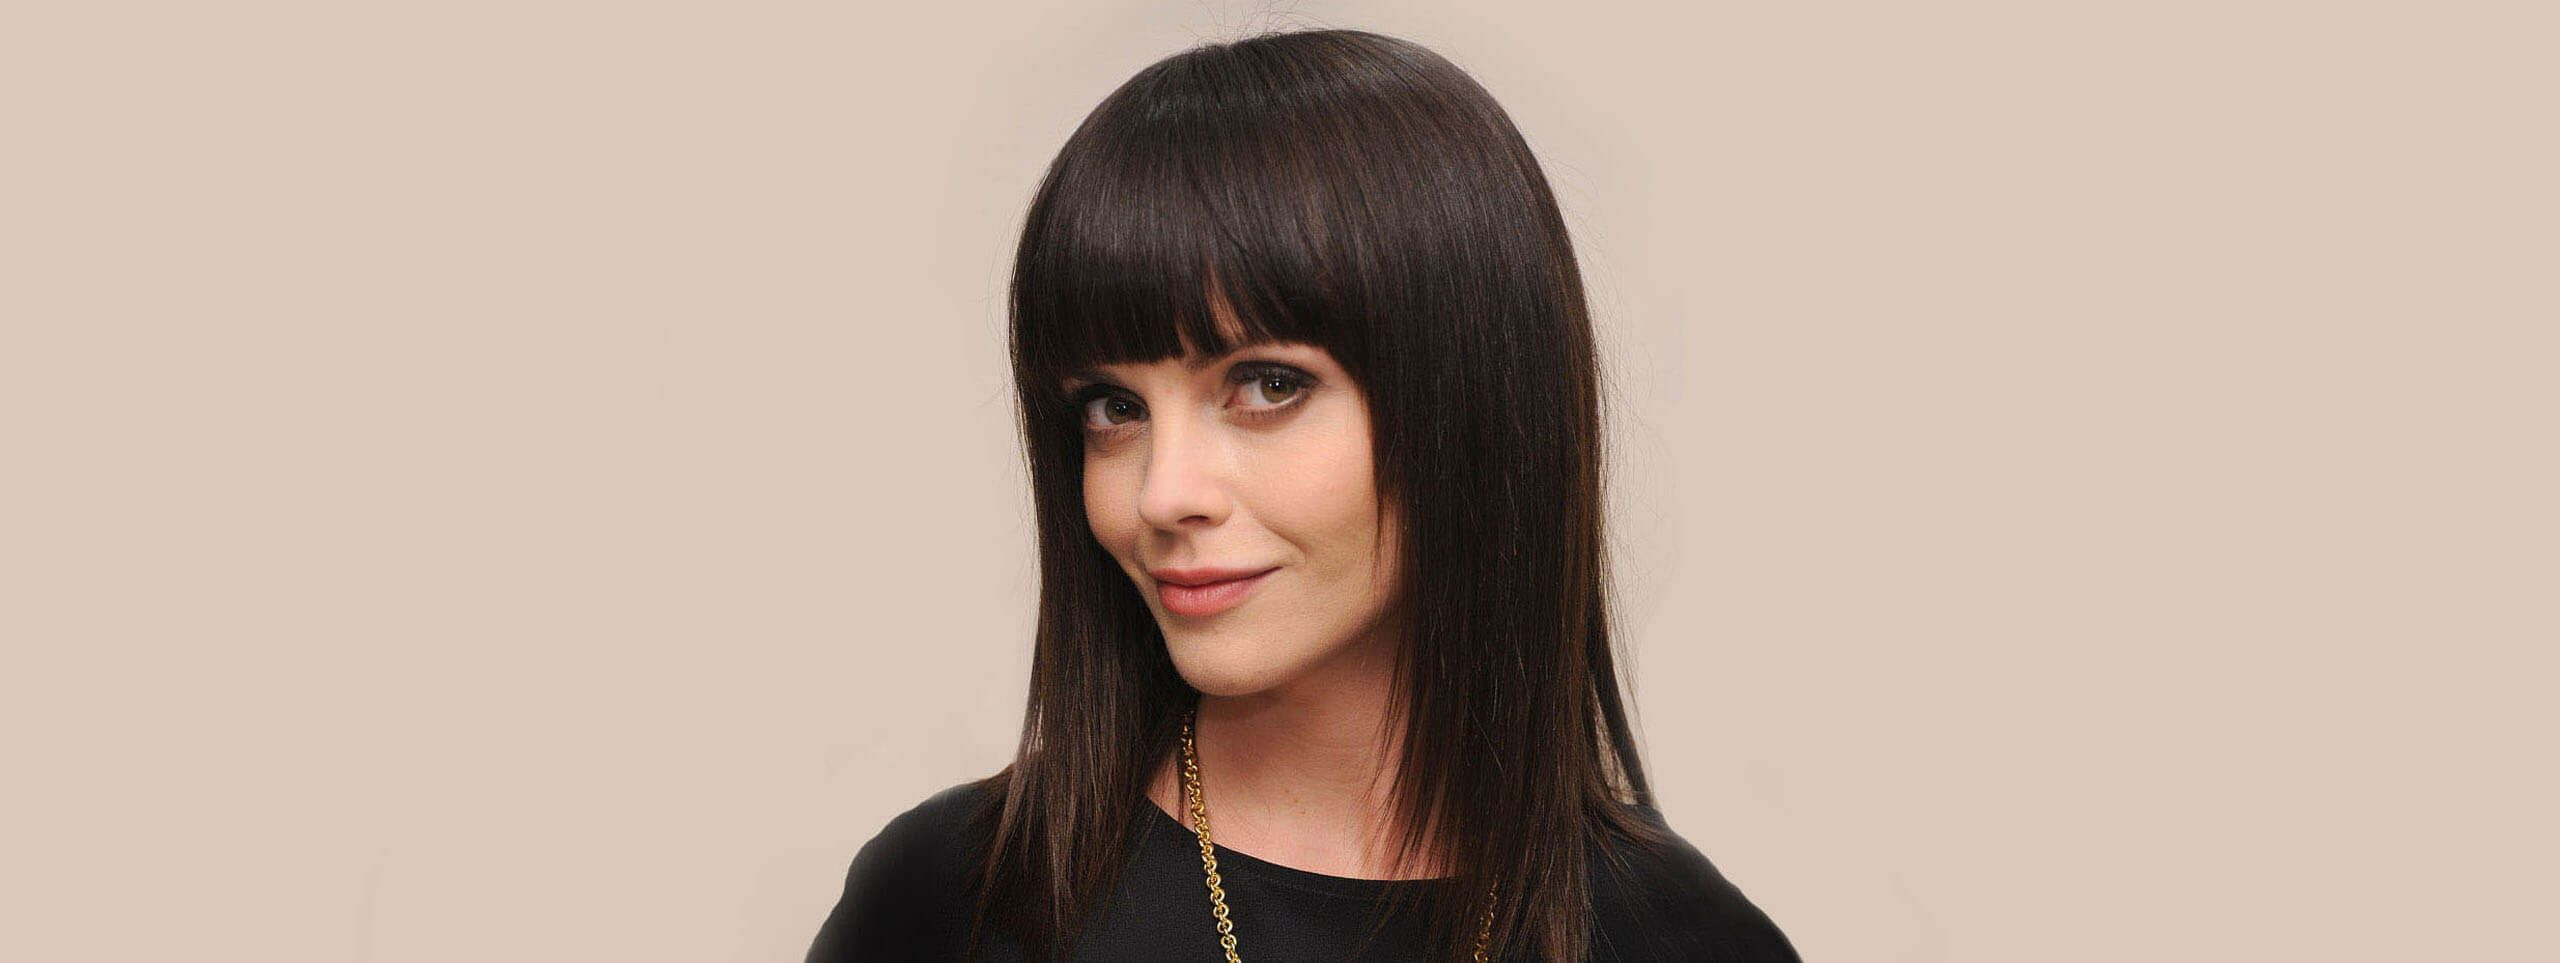 Woman with long, dark, straight, fringed hairstyle